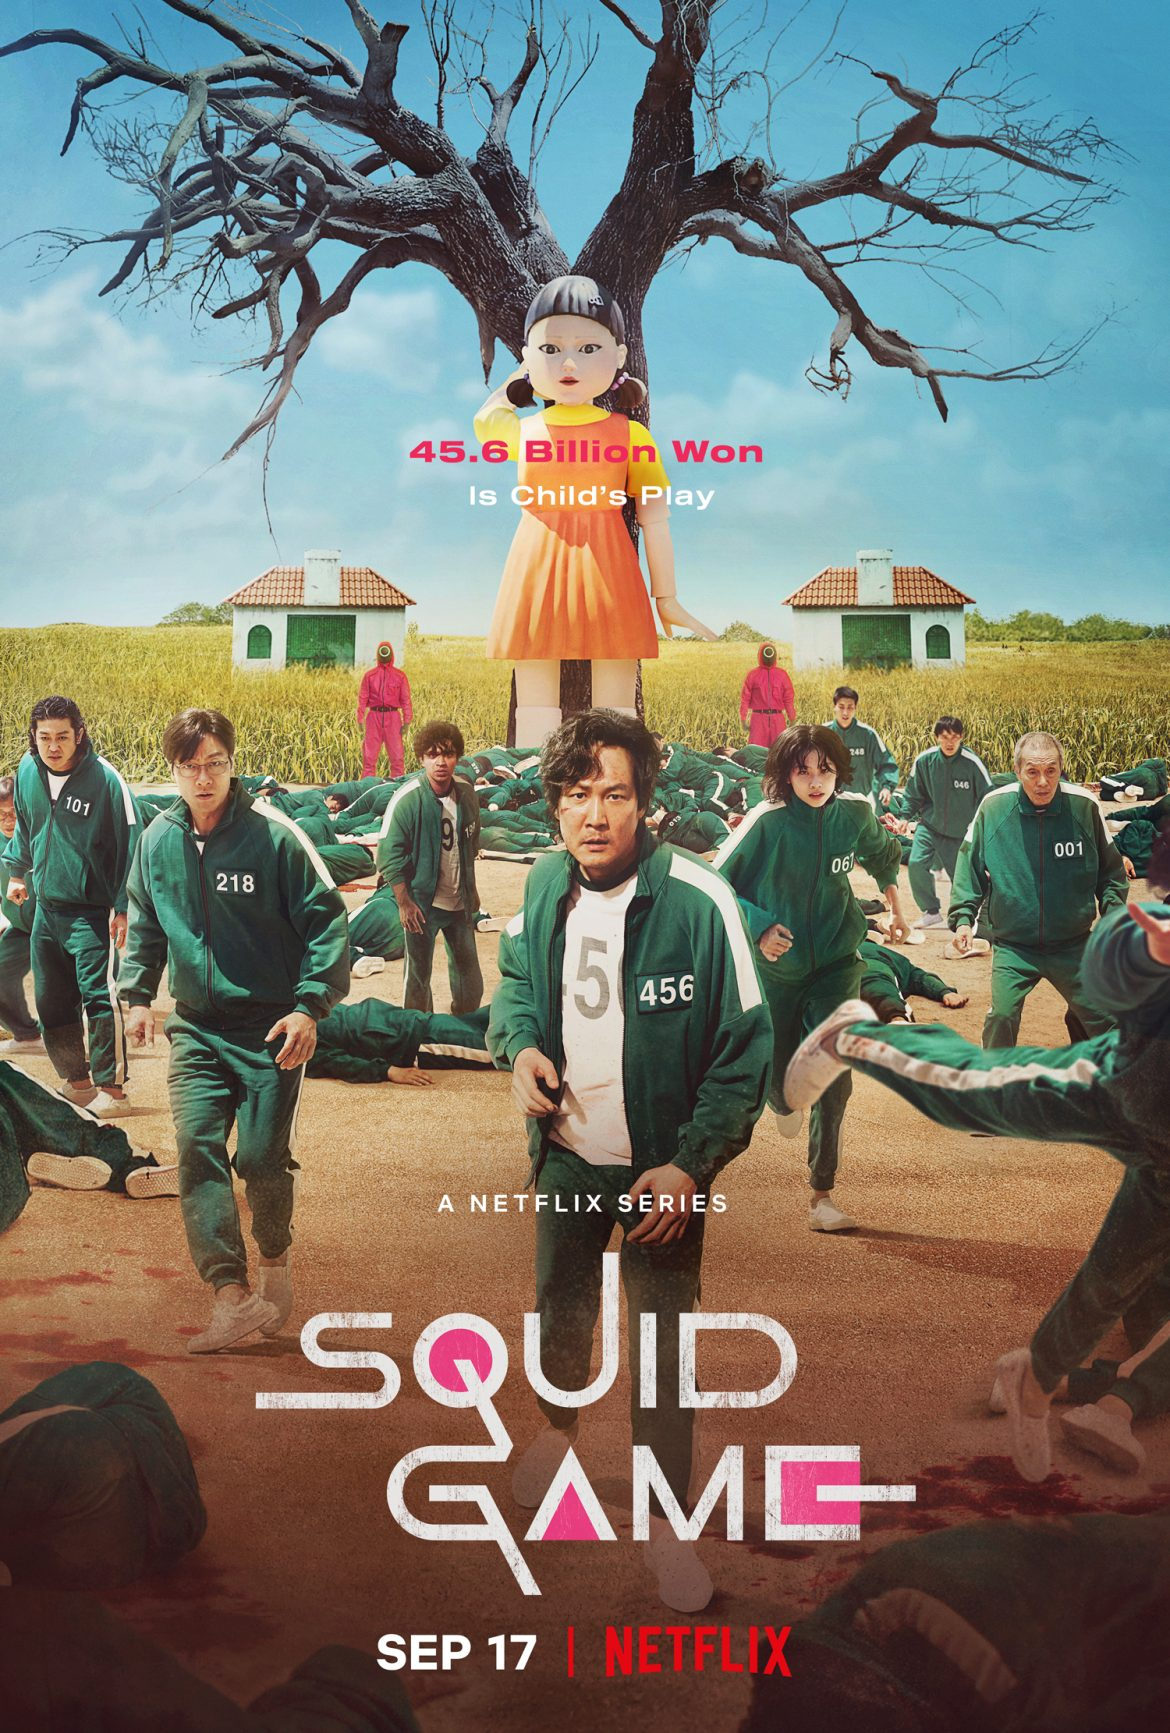 Have you seen the trailer for Netflix's 'Squid Game'?